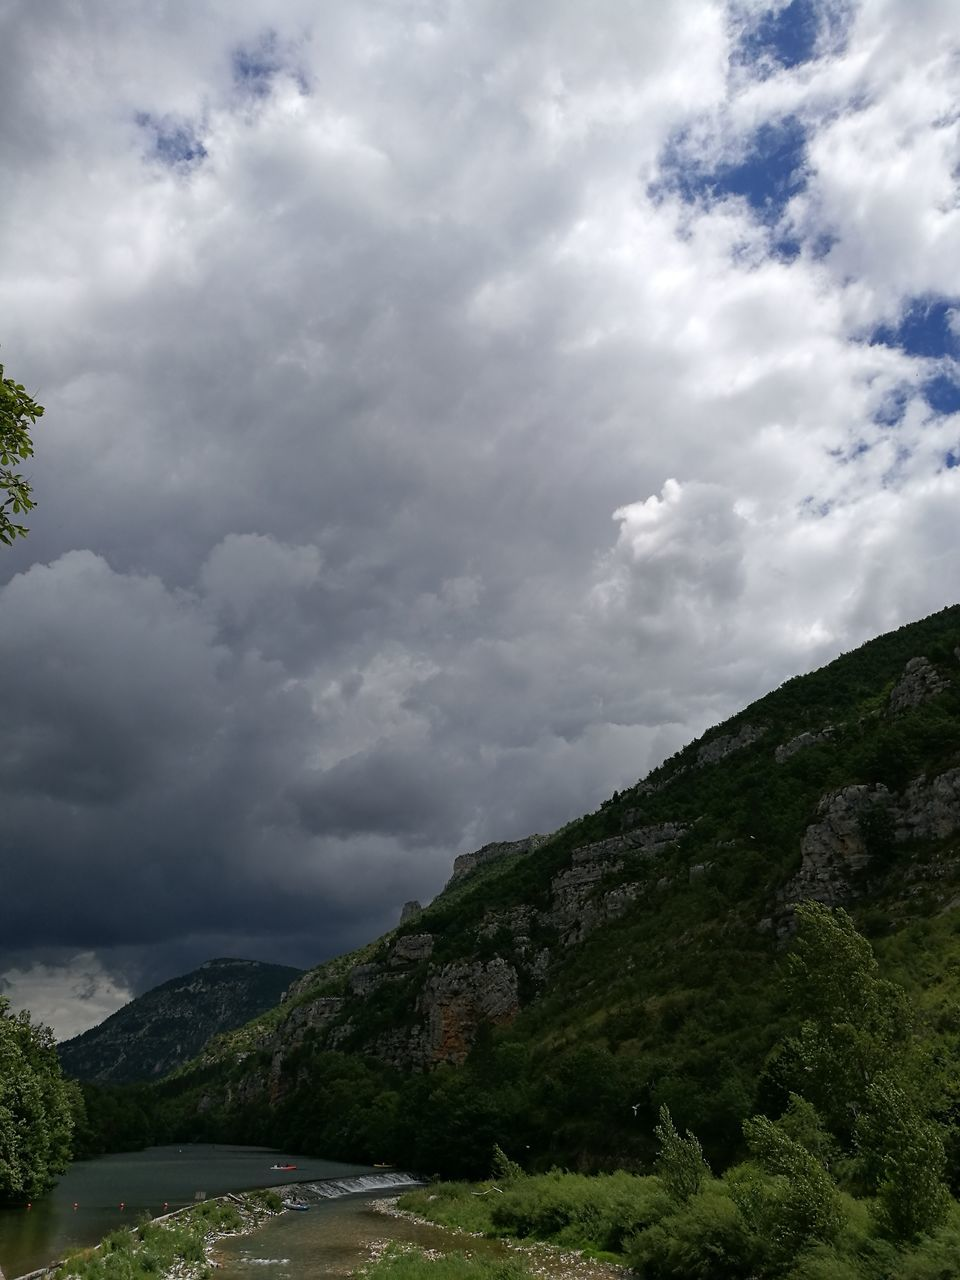 cloud - sky, sky, nature, tranquility, beauty in nature, mountain, scenics, outdoors, tranquil scene, no people, day, landscape, tree